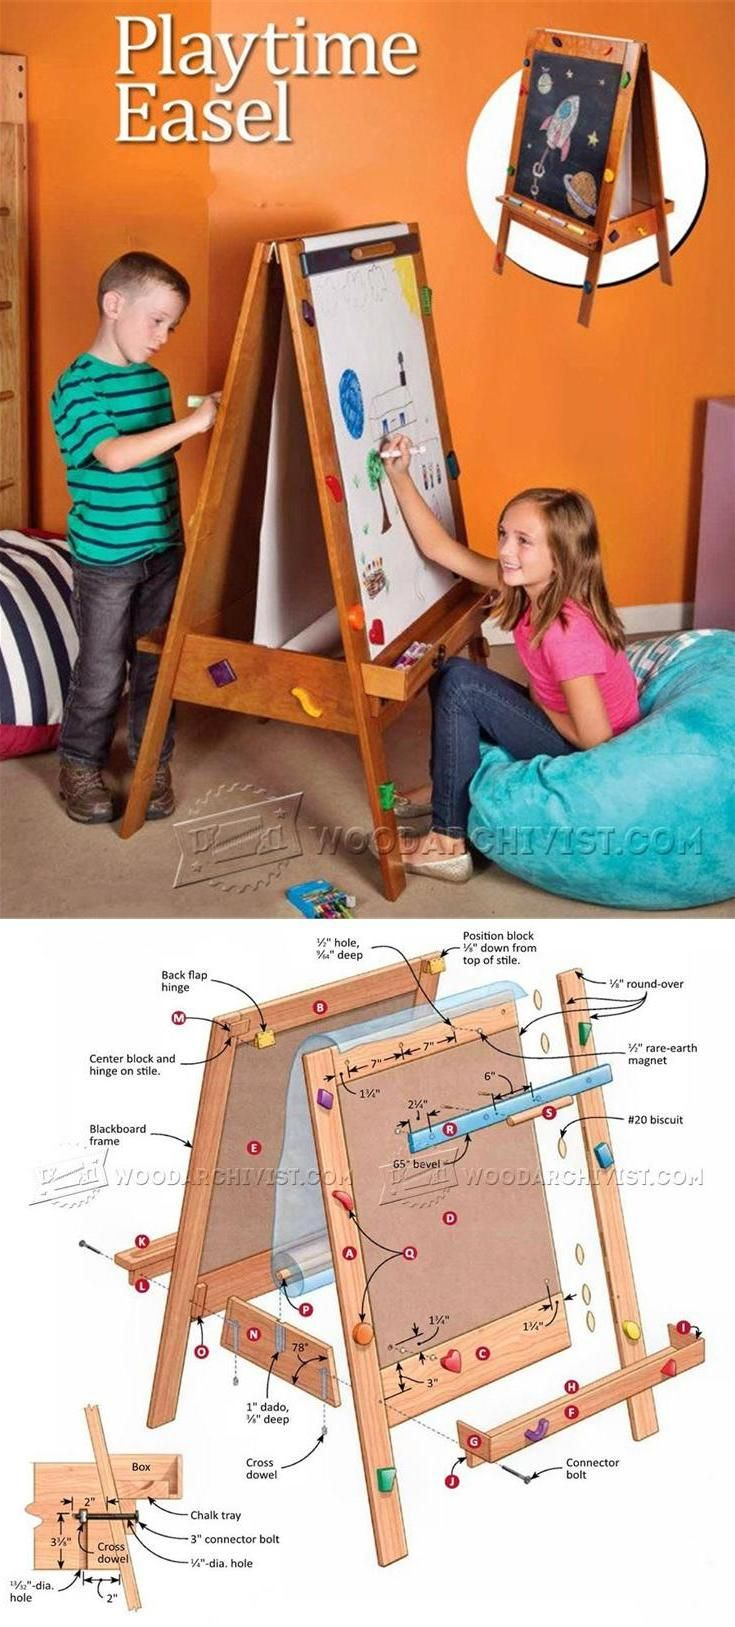 Kids Easel Plans - Wooden Toy Plans and Projects   WoodArchivist.com